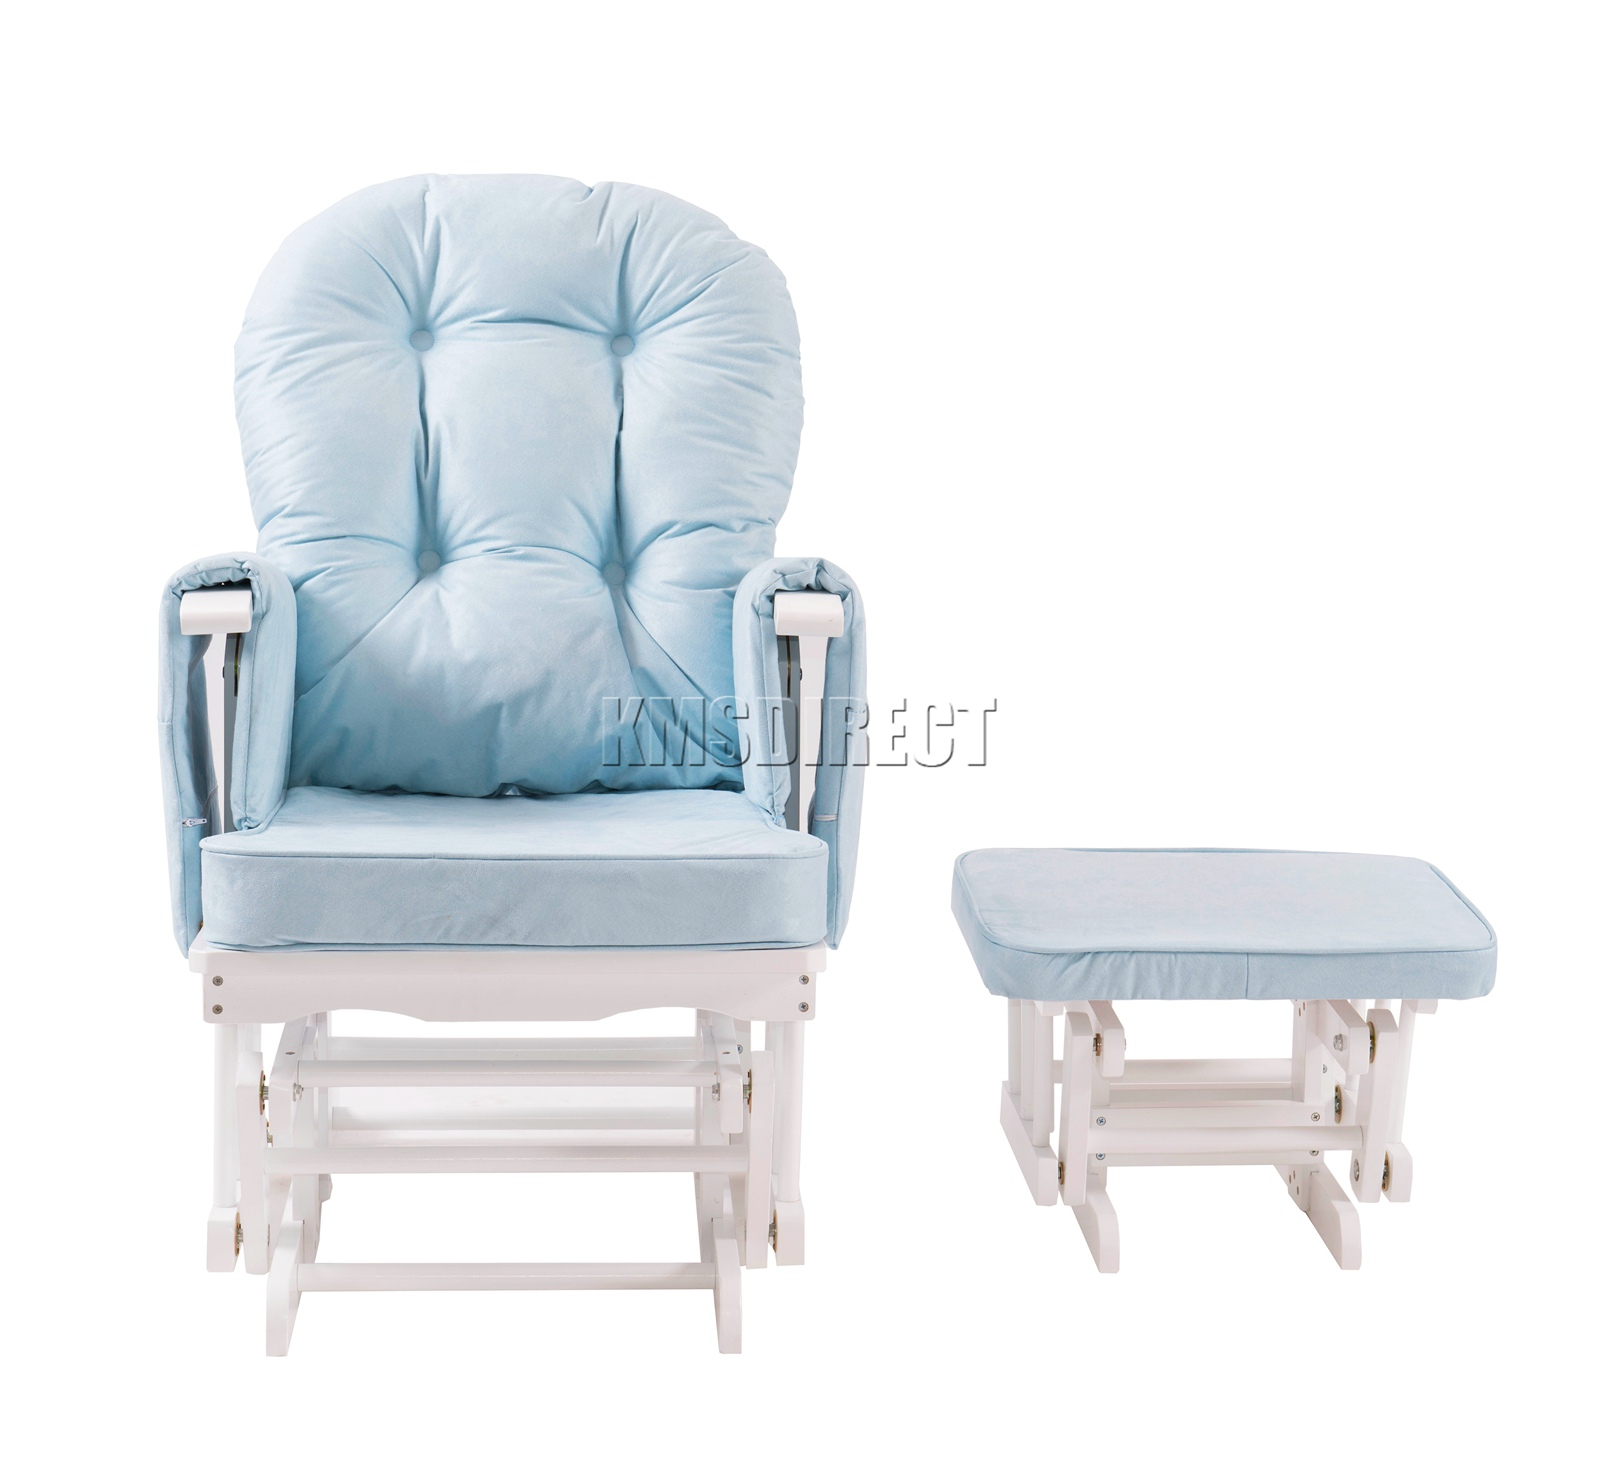 FoxHunter-Nursing-Glider-Maternity-Rocking-Chair-With-Stool-White-Wood-Frame-New miniatuur 14